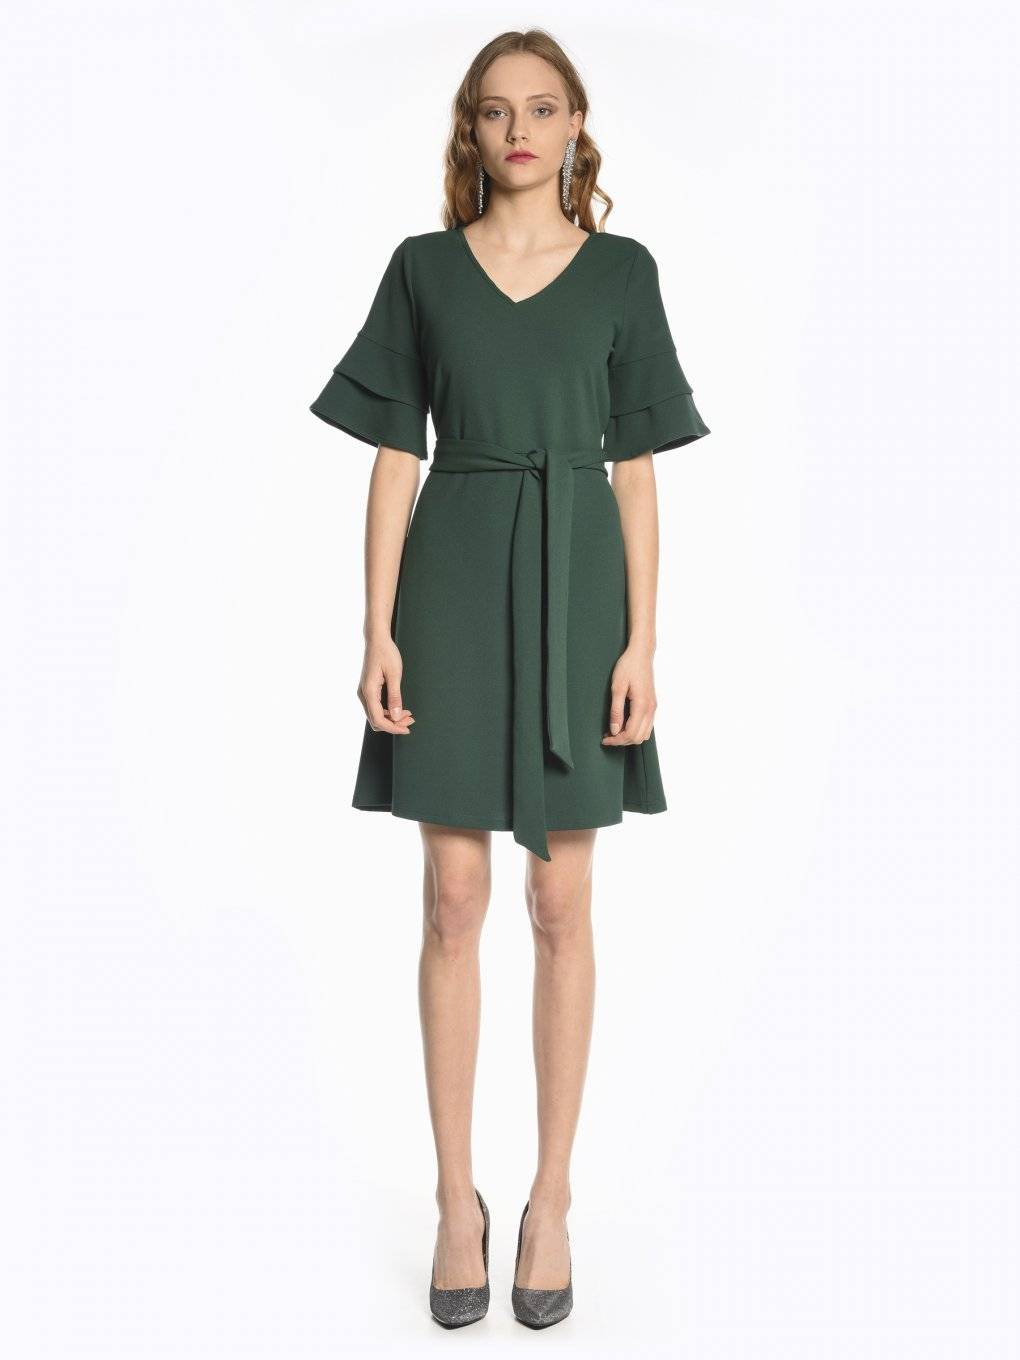 Bell sleeve A-line dress with belt